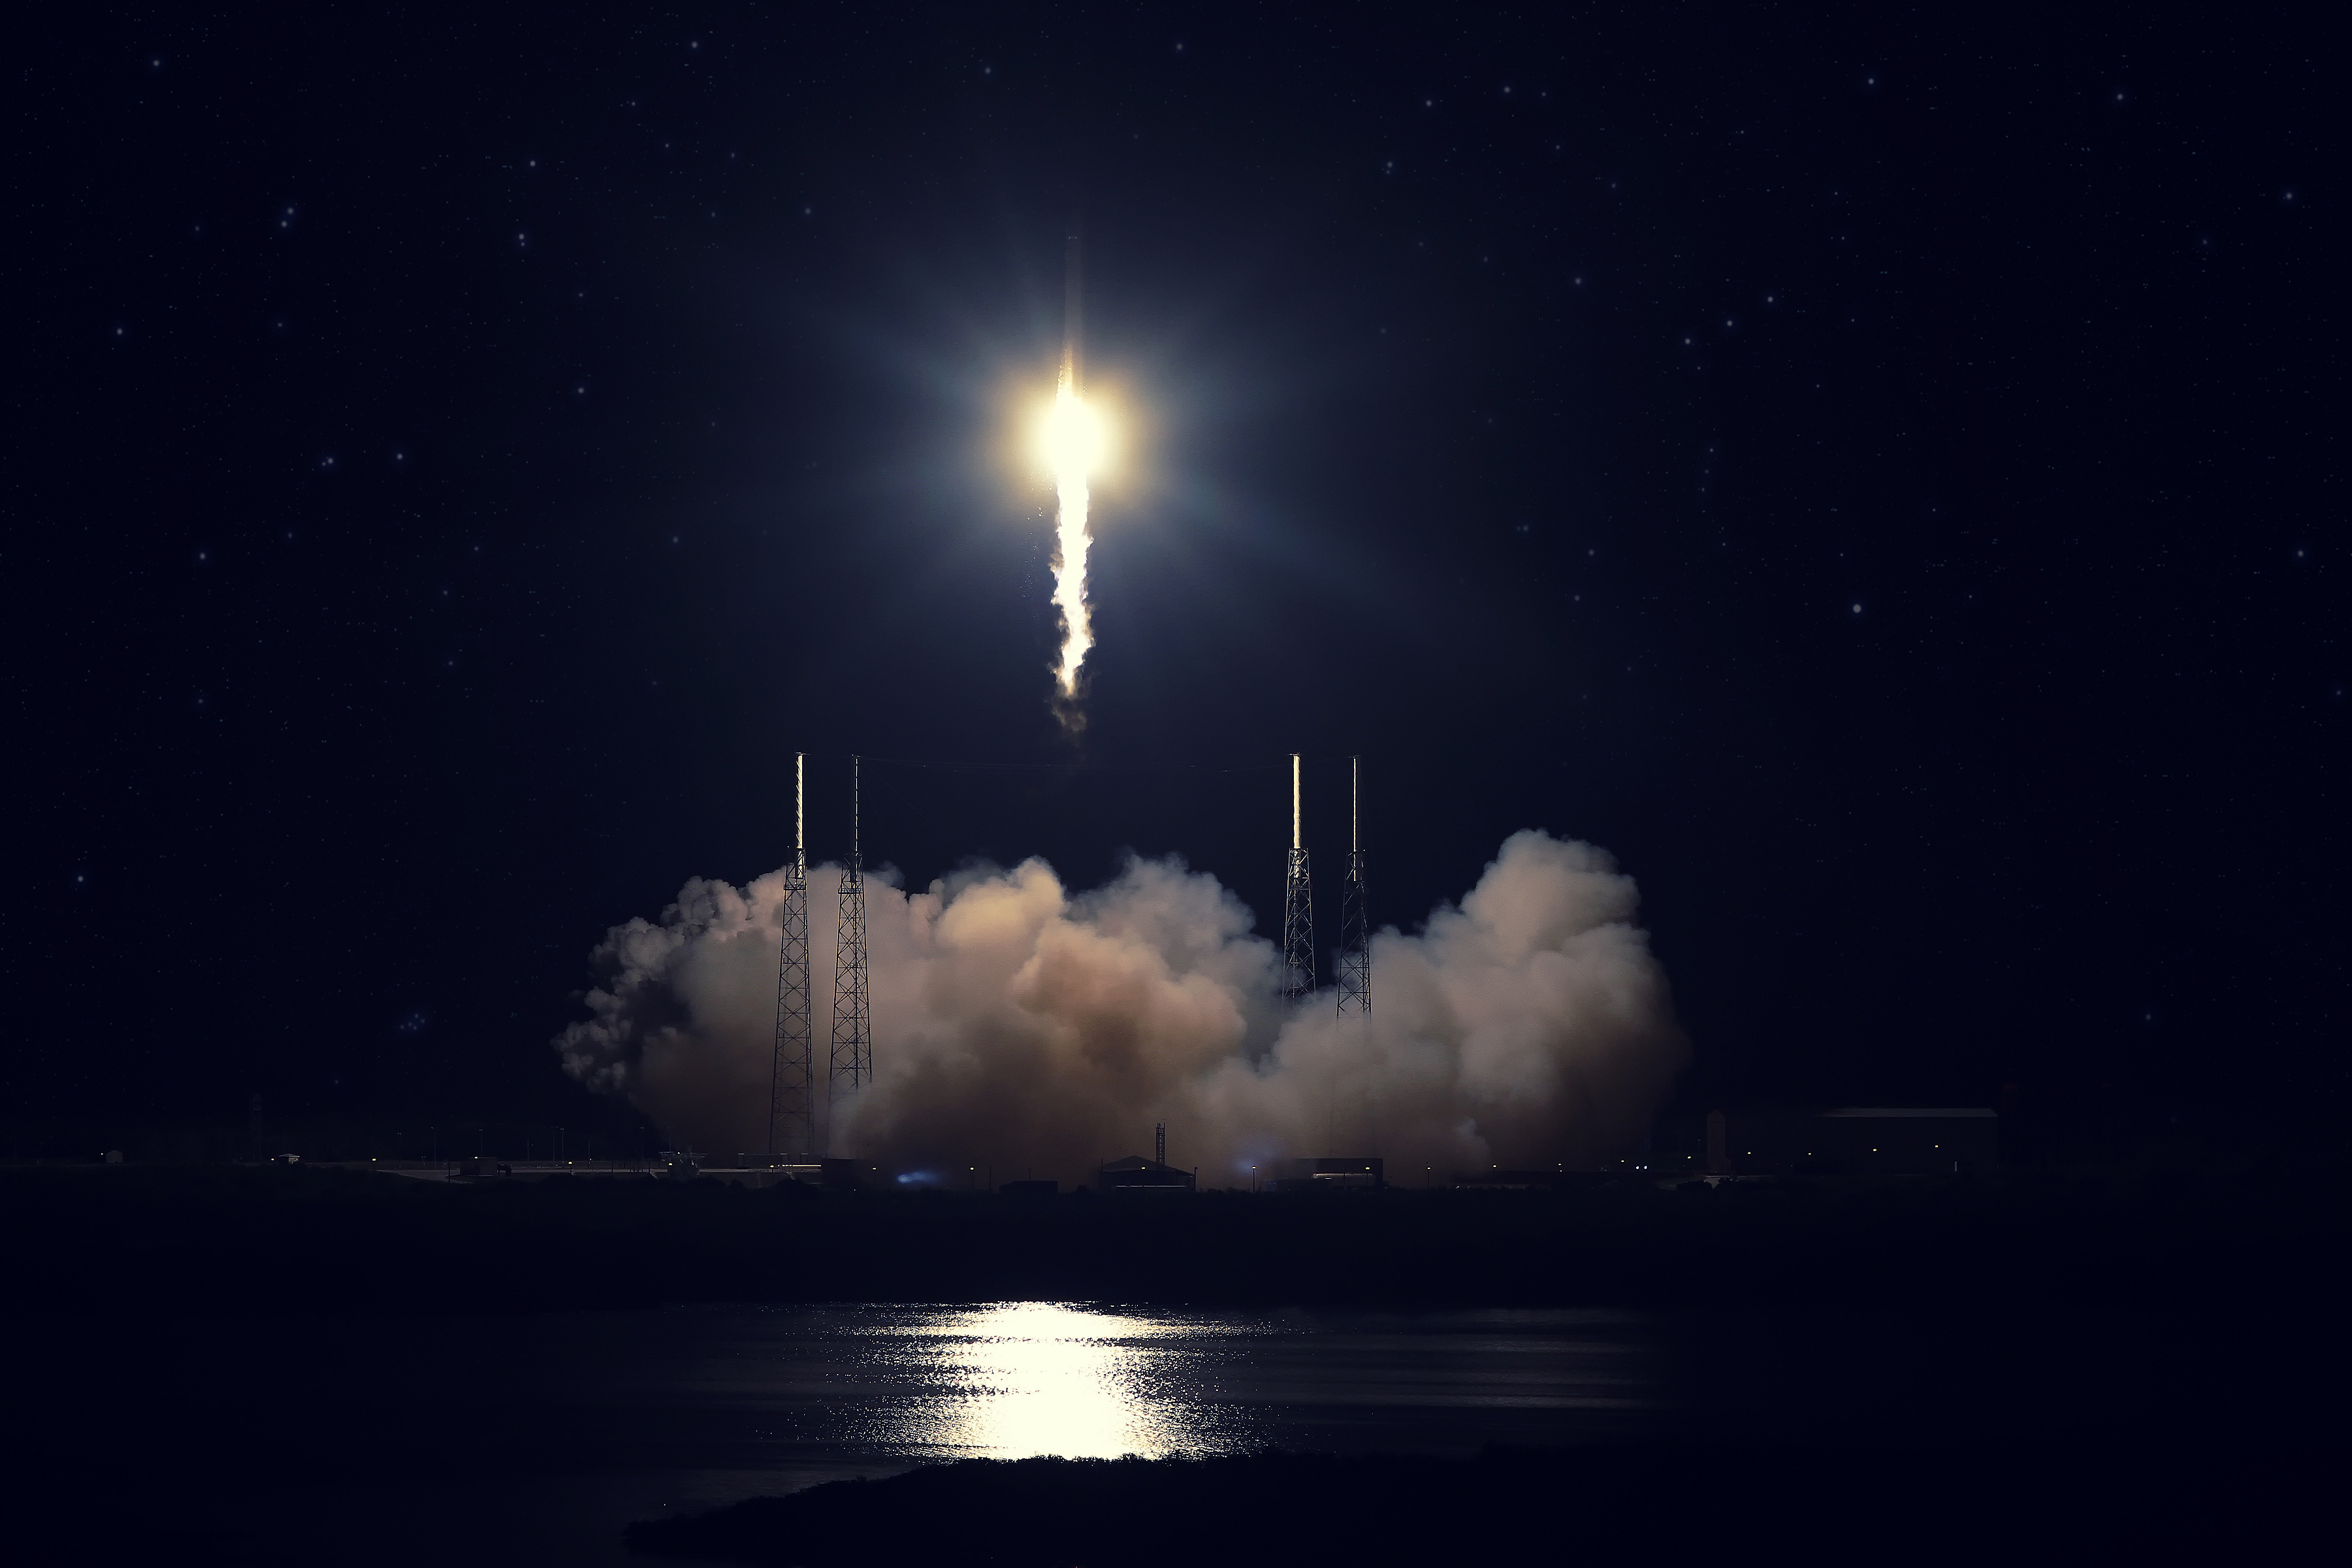 spacex wallpaper background 59812